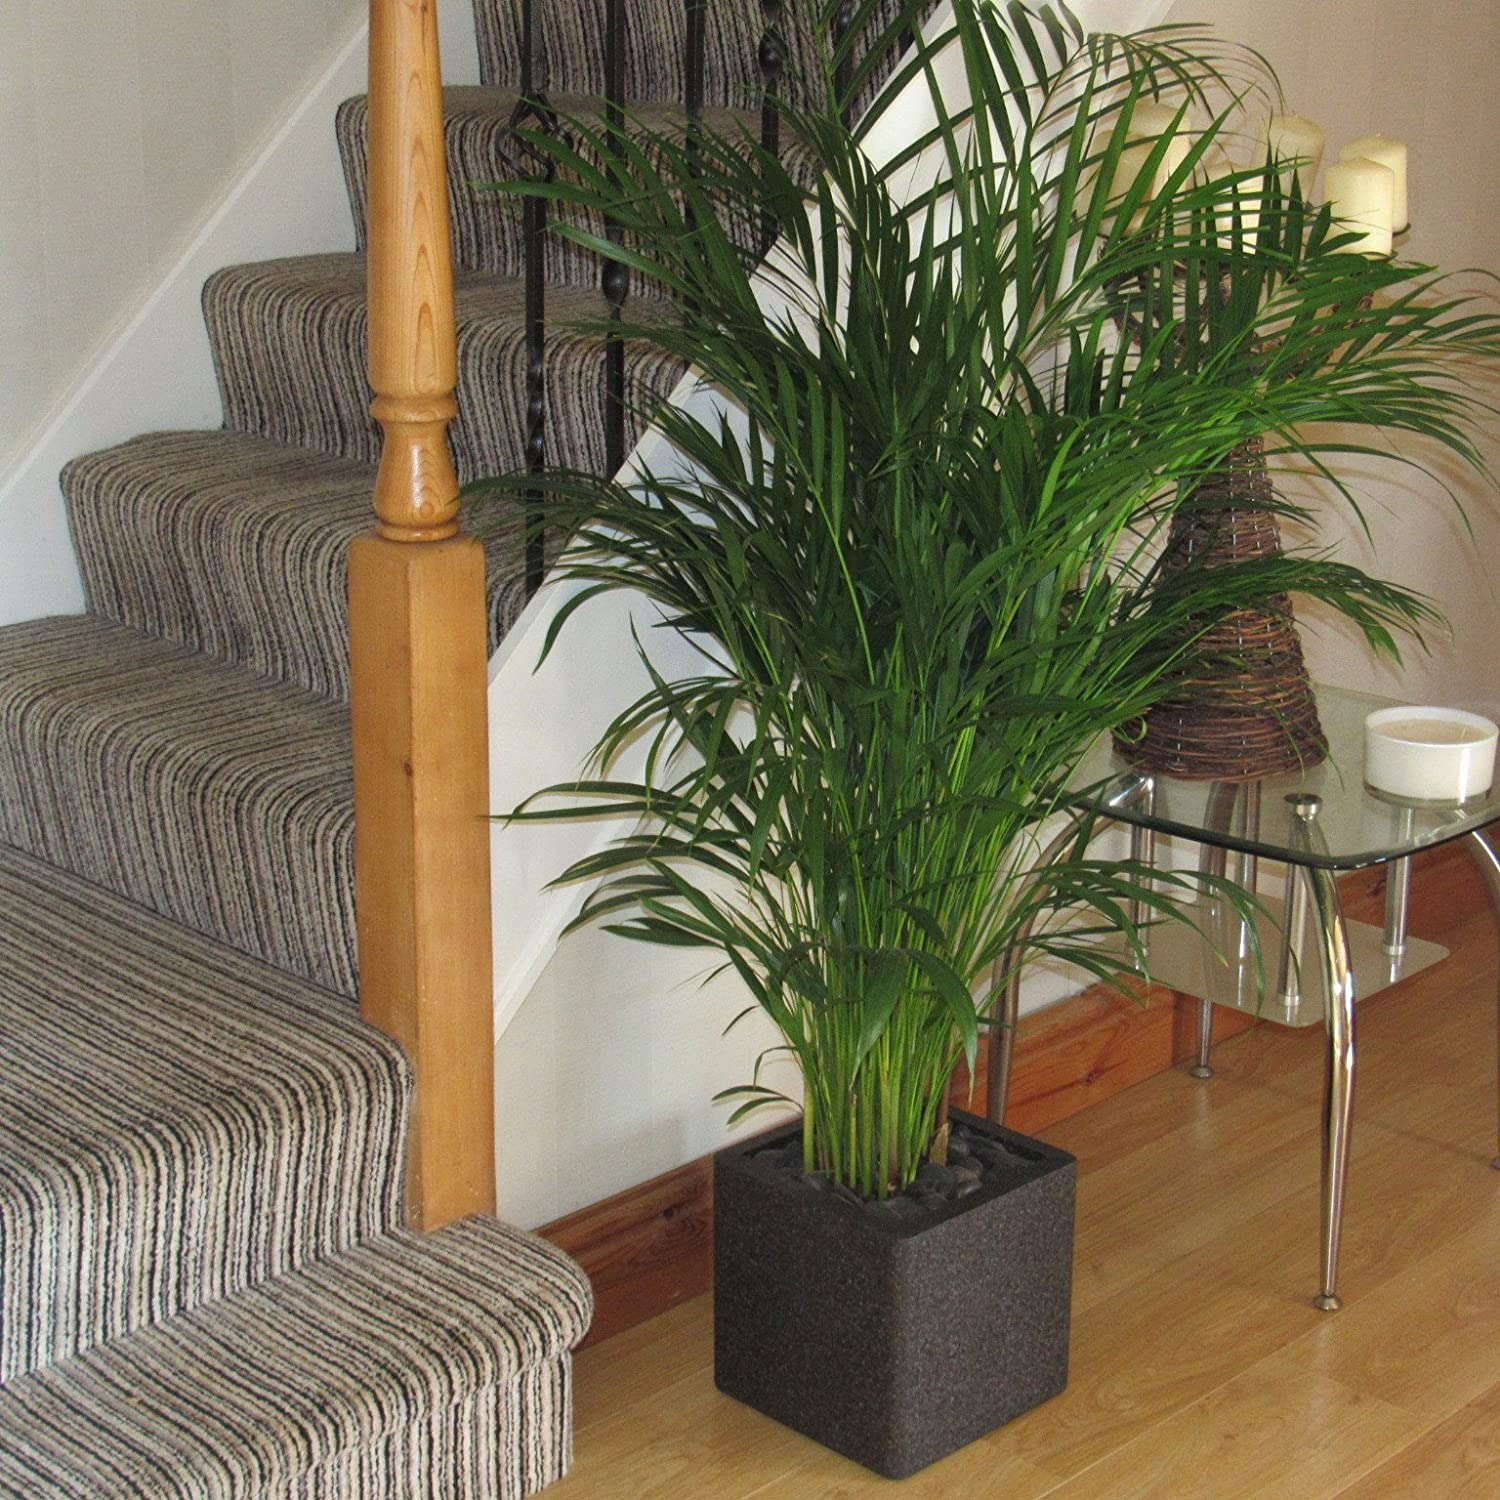 Bentleys Large Areca Indoor Palm Tree 3.5-4ft Stunning Quality